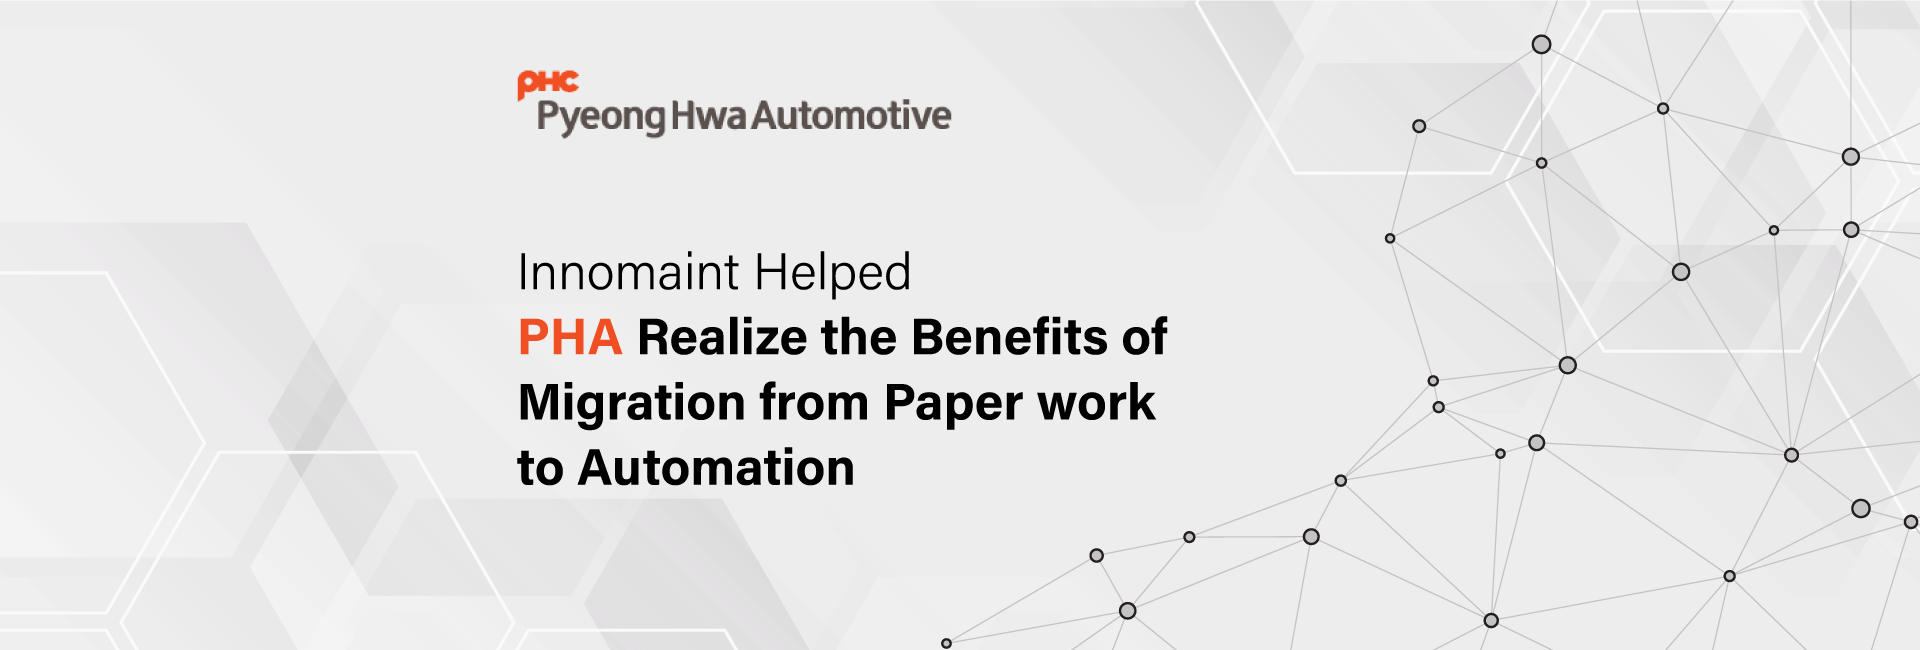 Innomaint helped PHA realize the benefits of migration from paper